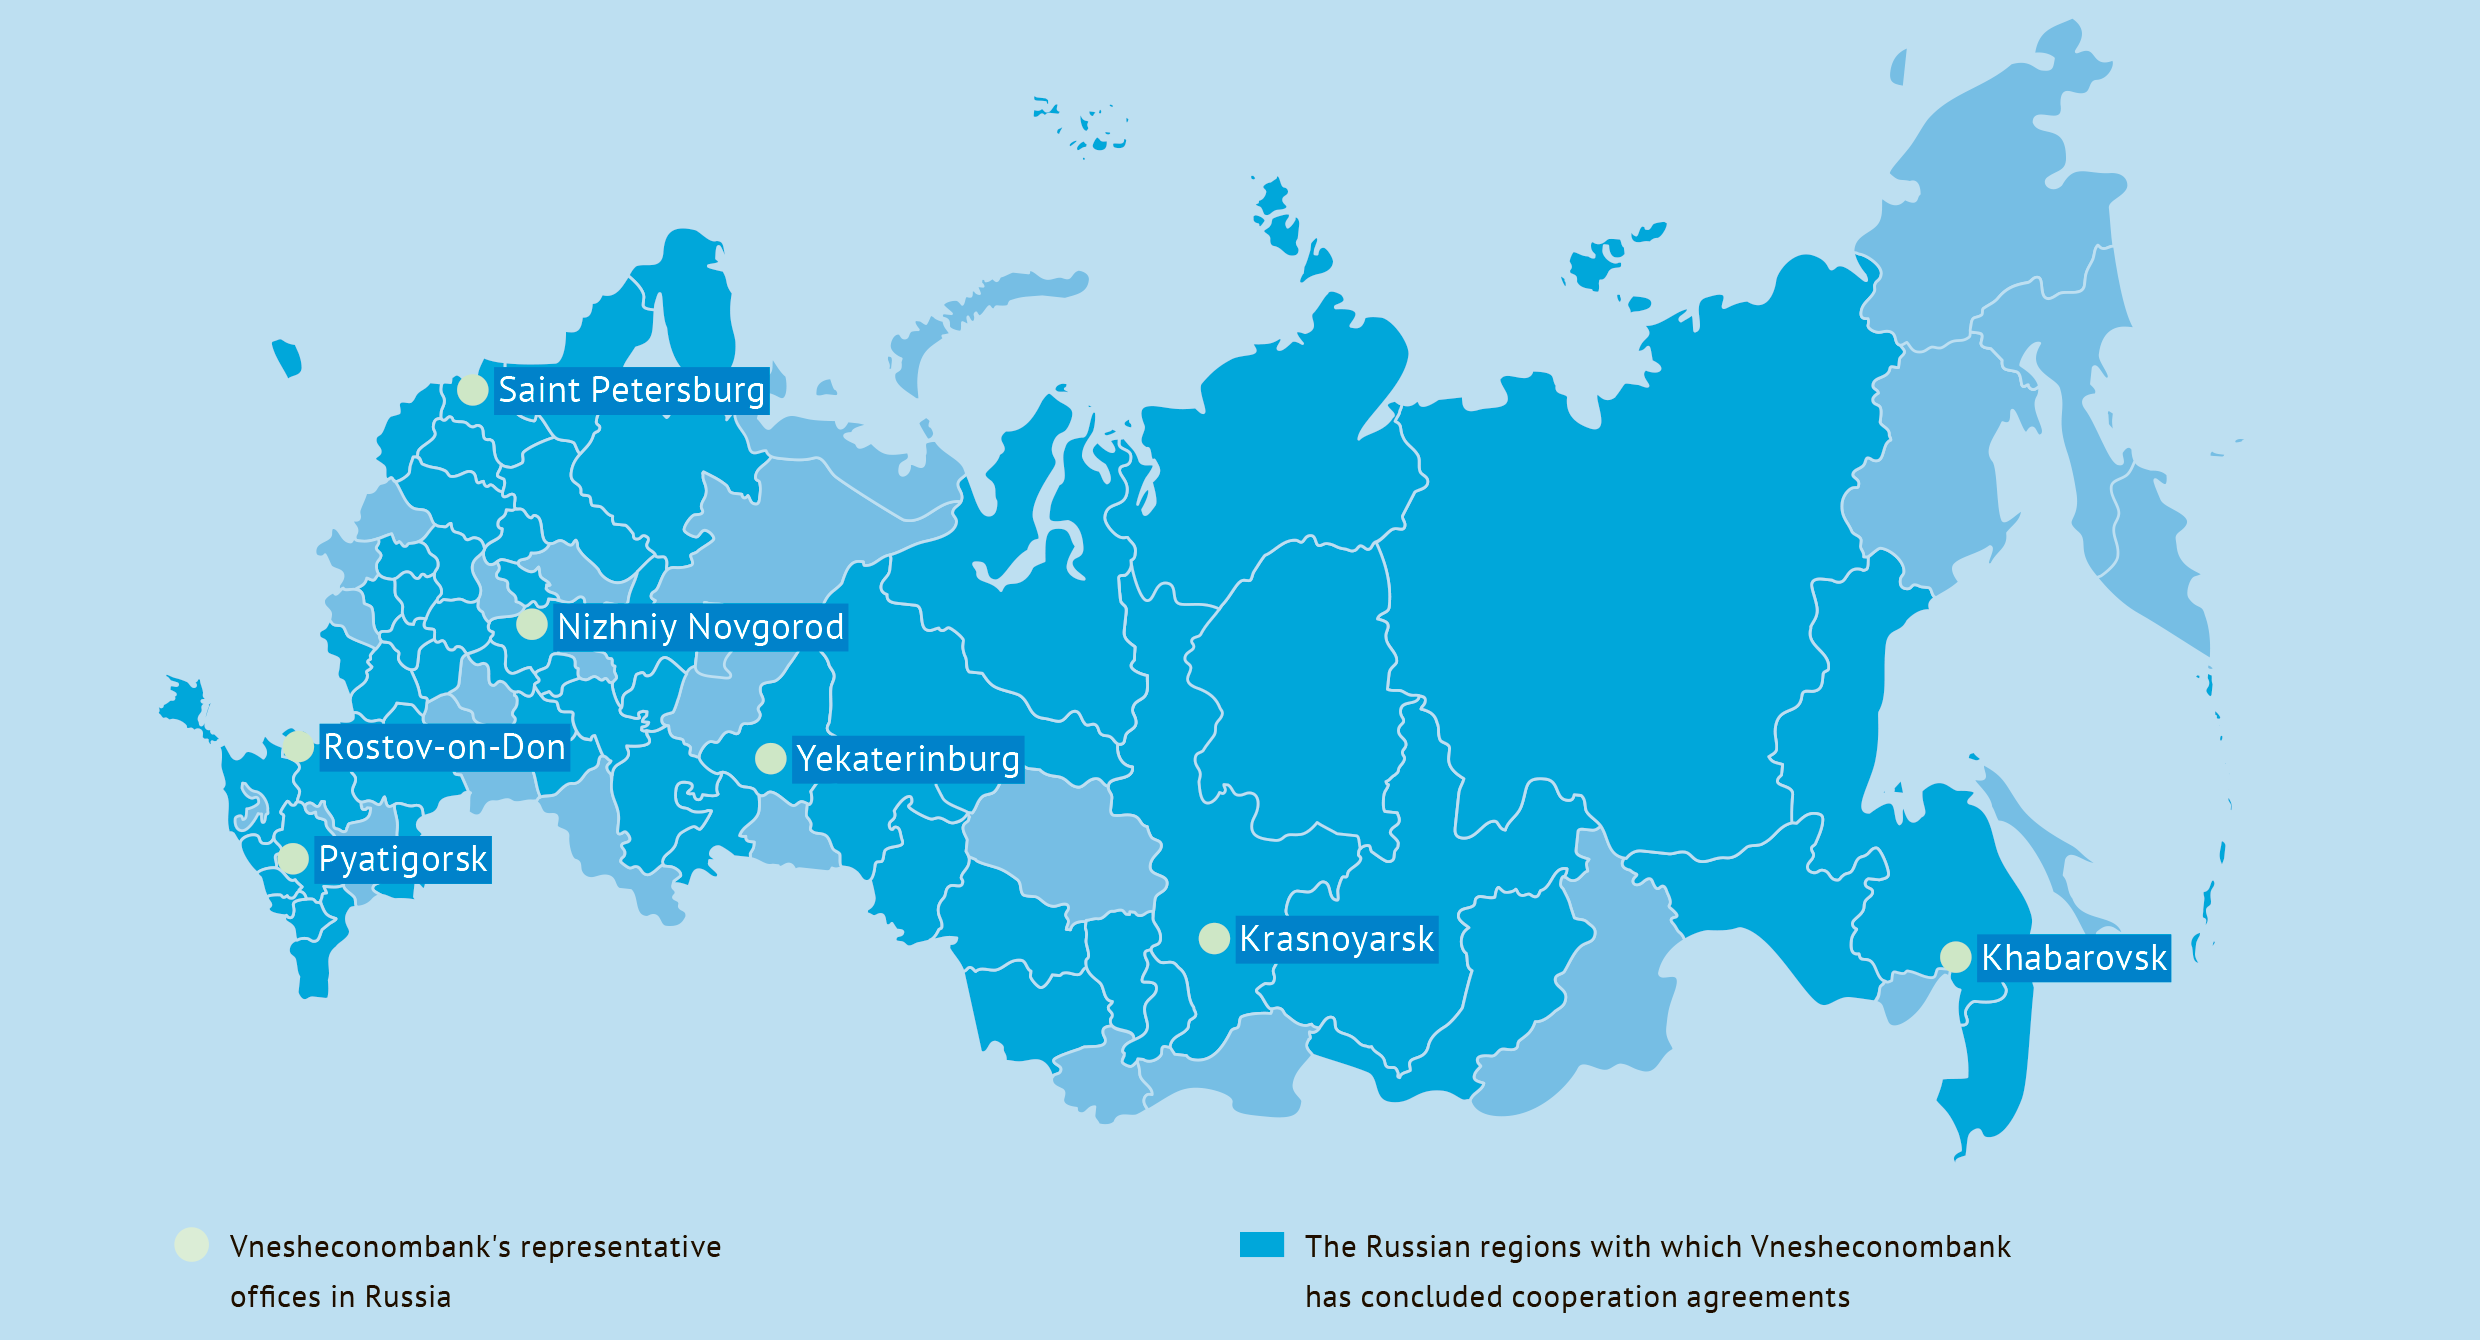 Cooperation Agreements between Vnesheconombank and Russian Regions